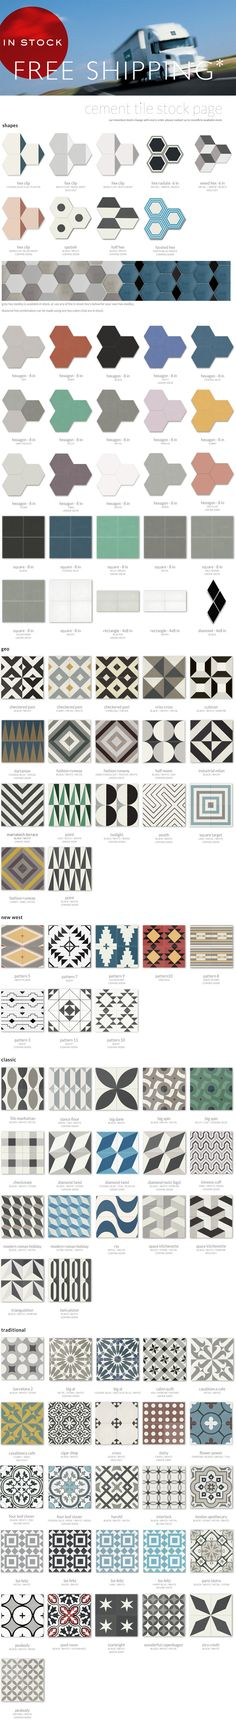 clé cement tile in-stock, $14.50/sf for 2 colors, 16/sf for 3 colors or more